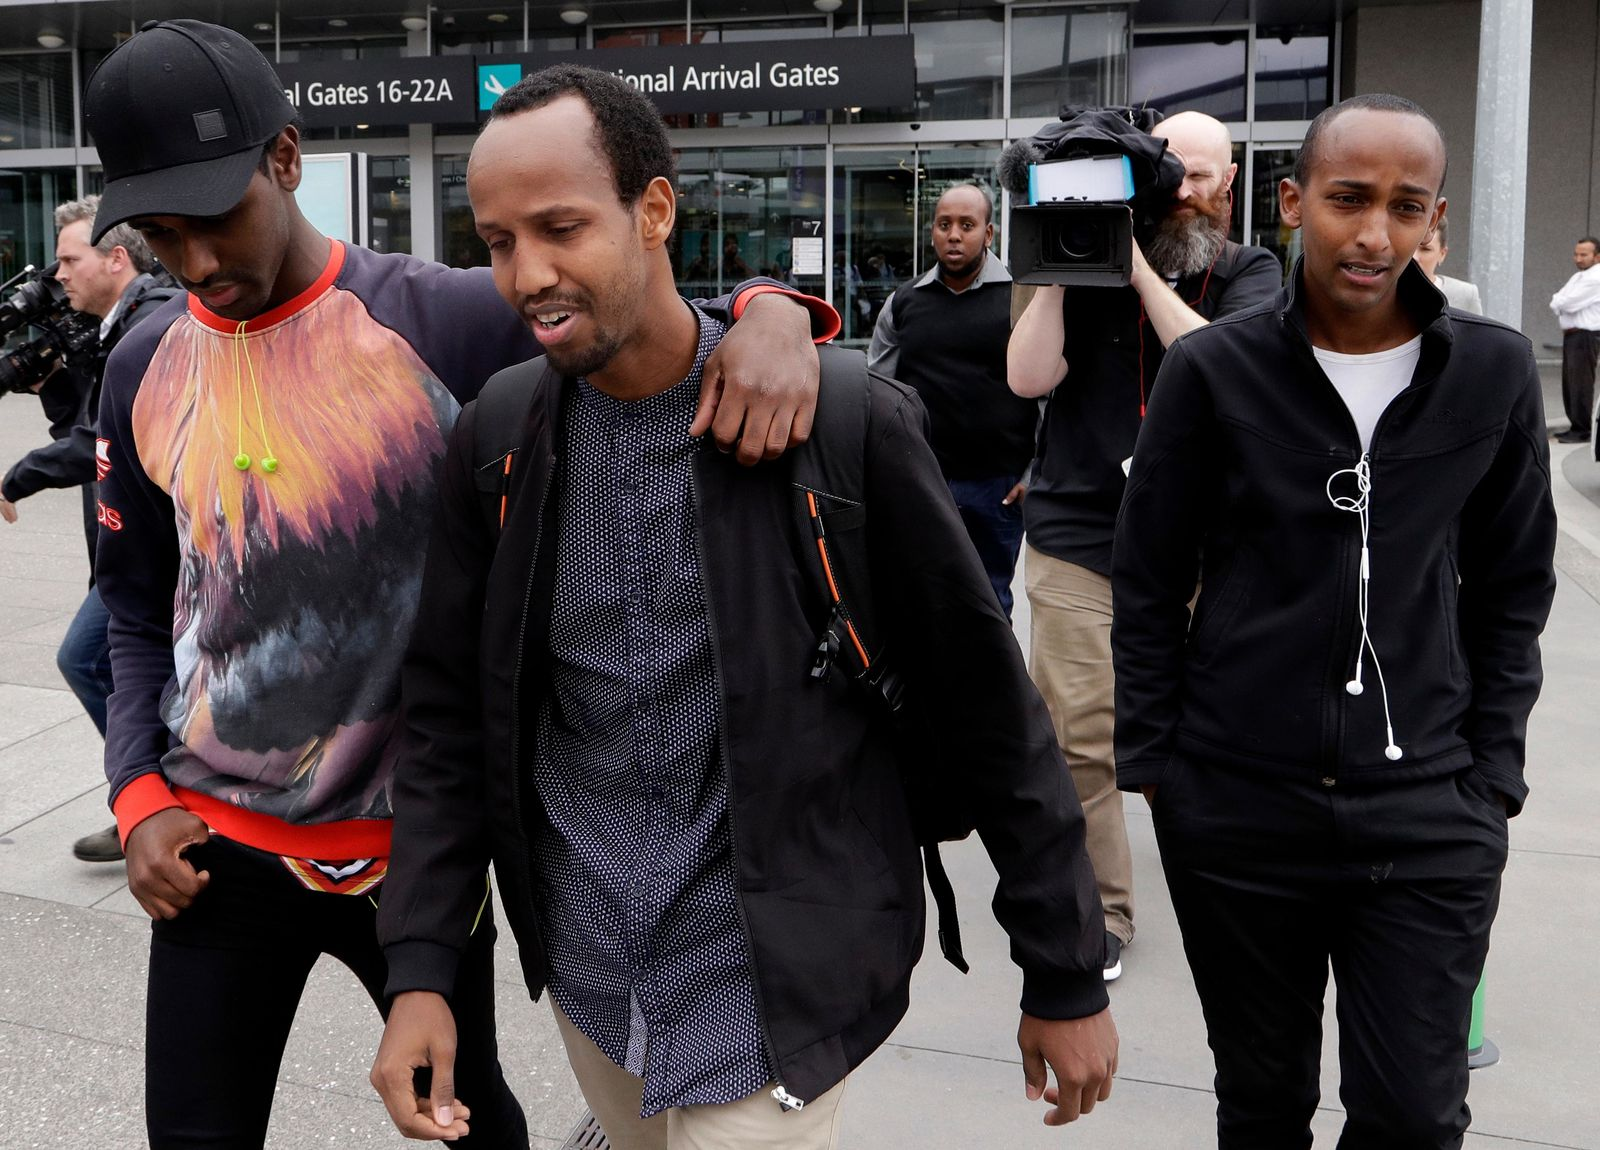 Abdifatah Ibrahim, center, and his brother Abdi, right, walk with an unidentified friend in Christchurch, New Zealand, Sunday, March 17, 2019.{ } (AP Photo/Mark Baker)